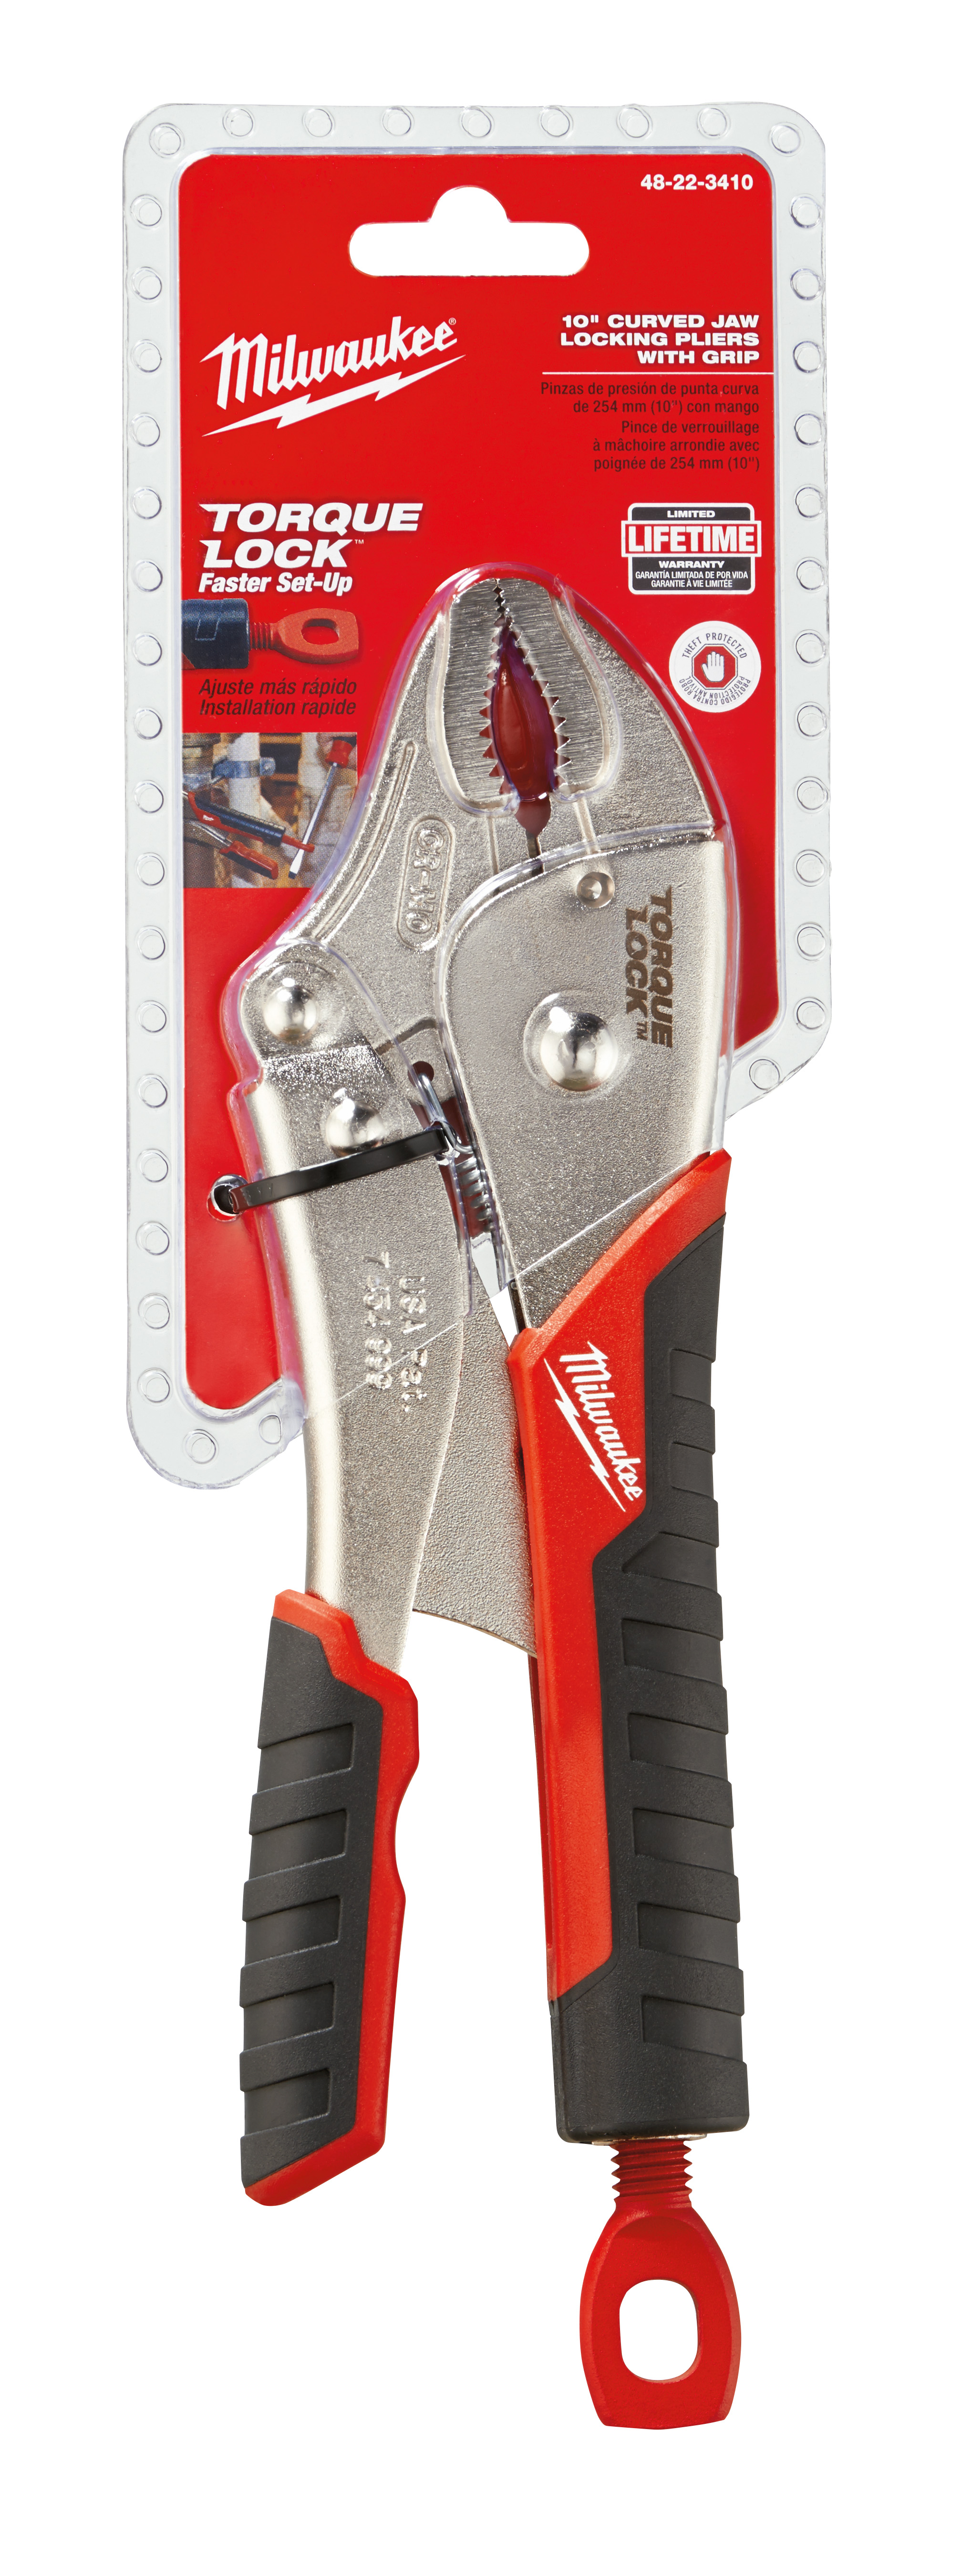 Milwaukee® TORQUE LOCK™ 48-22-3410 1-Handed Lever Locking Plier, 2 in Nominal, 1-5/32 in L x 29/64 in W x 29/64 in THK Alloy Steel Curved Jaw, 10 in OAL